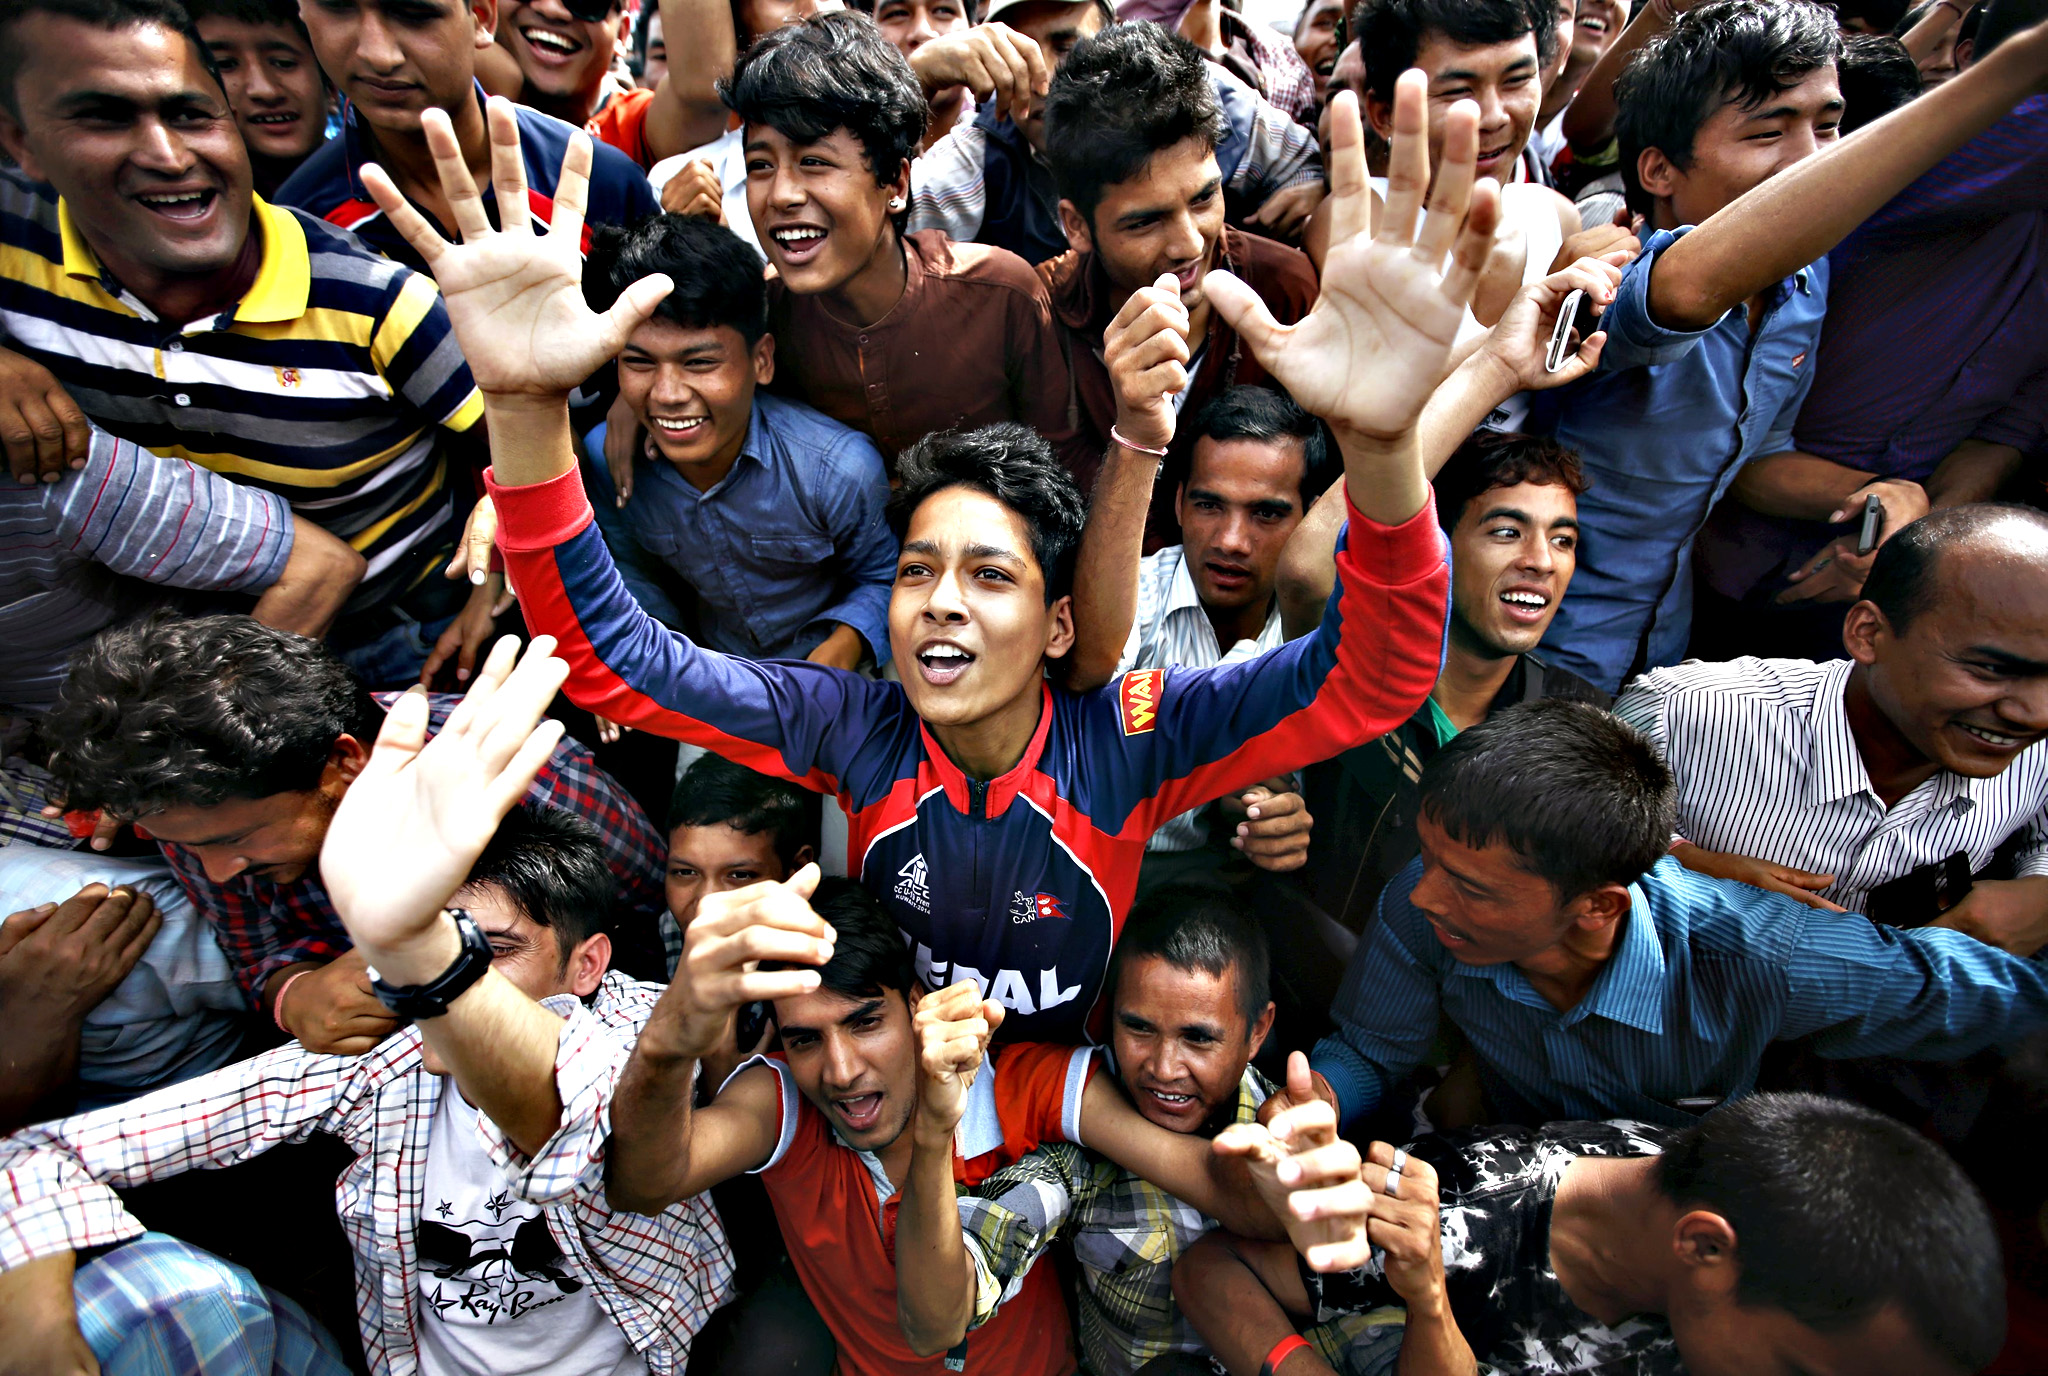 People cheer as they gather during a celebration a day after the first democratic constitution was announced in Kathmandu, Nepal September 21, 2015. Nepal adopted its first full democratic constitution on Sunday, a historic step for a nation that has witnessed war, a palace massacre and devastating earthquakes since a campaign to create a modern state began more than 65 years ago